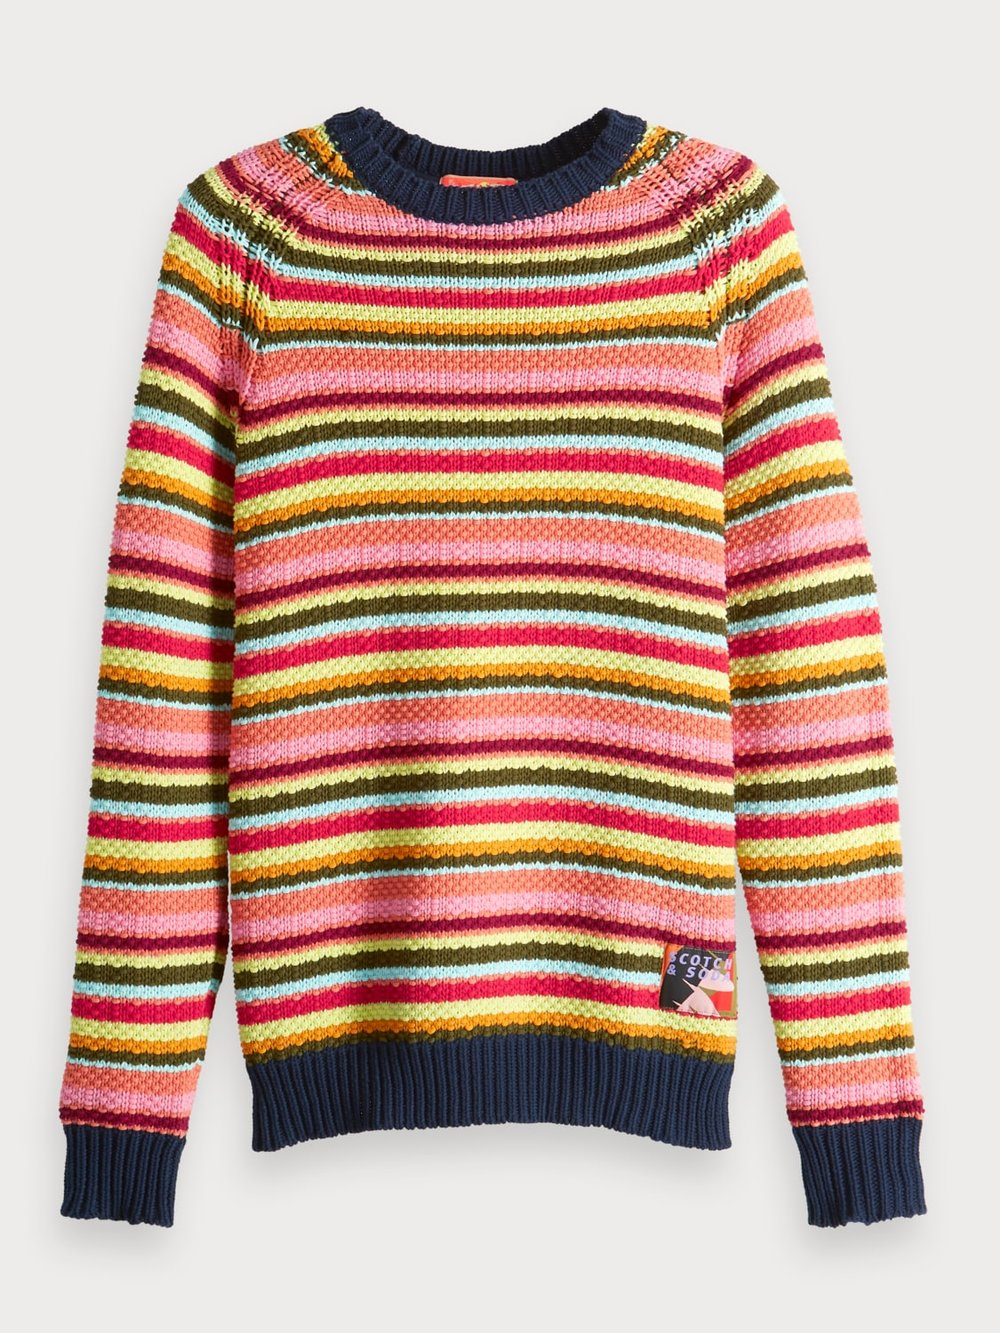 Scotch & Soda knit - £169.95 - Make up for the miserable weather with some bright stripes